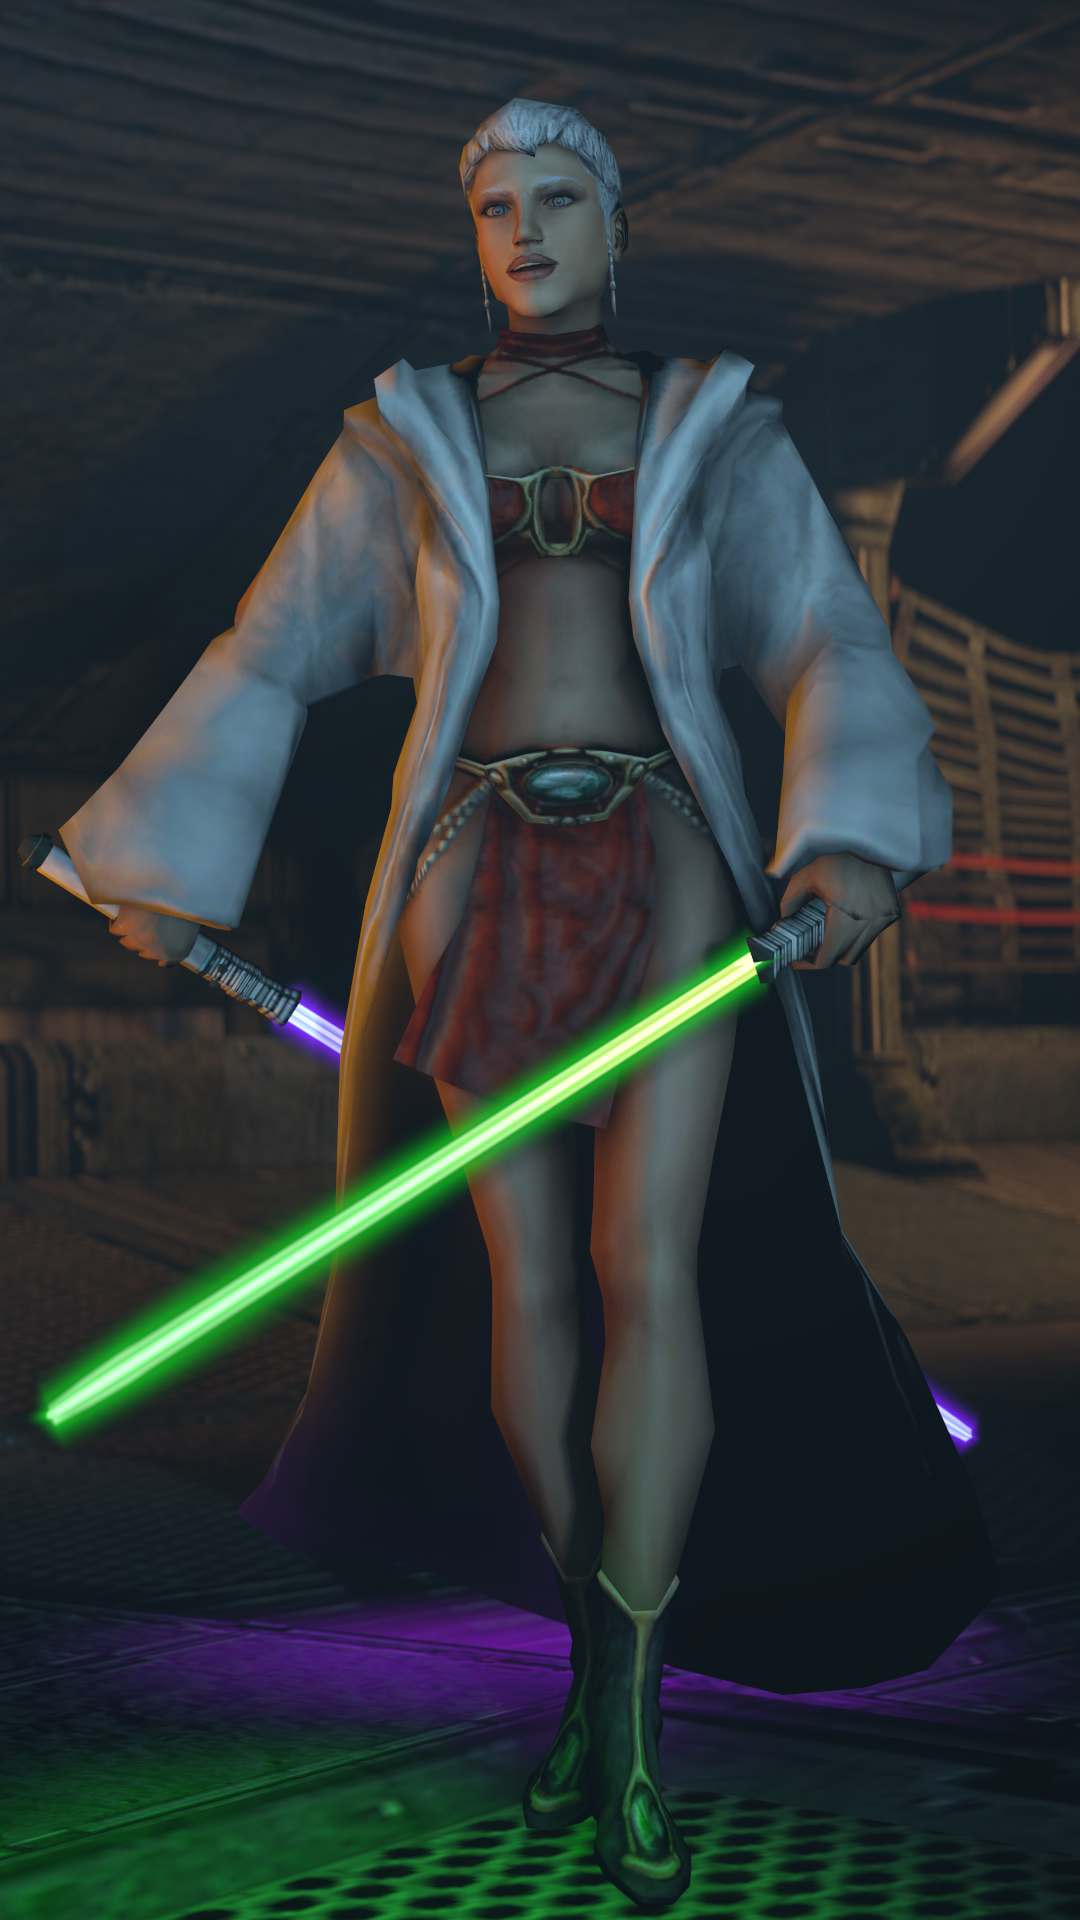 Star wars kotor nude mods softcore movie